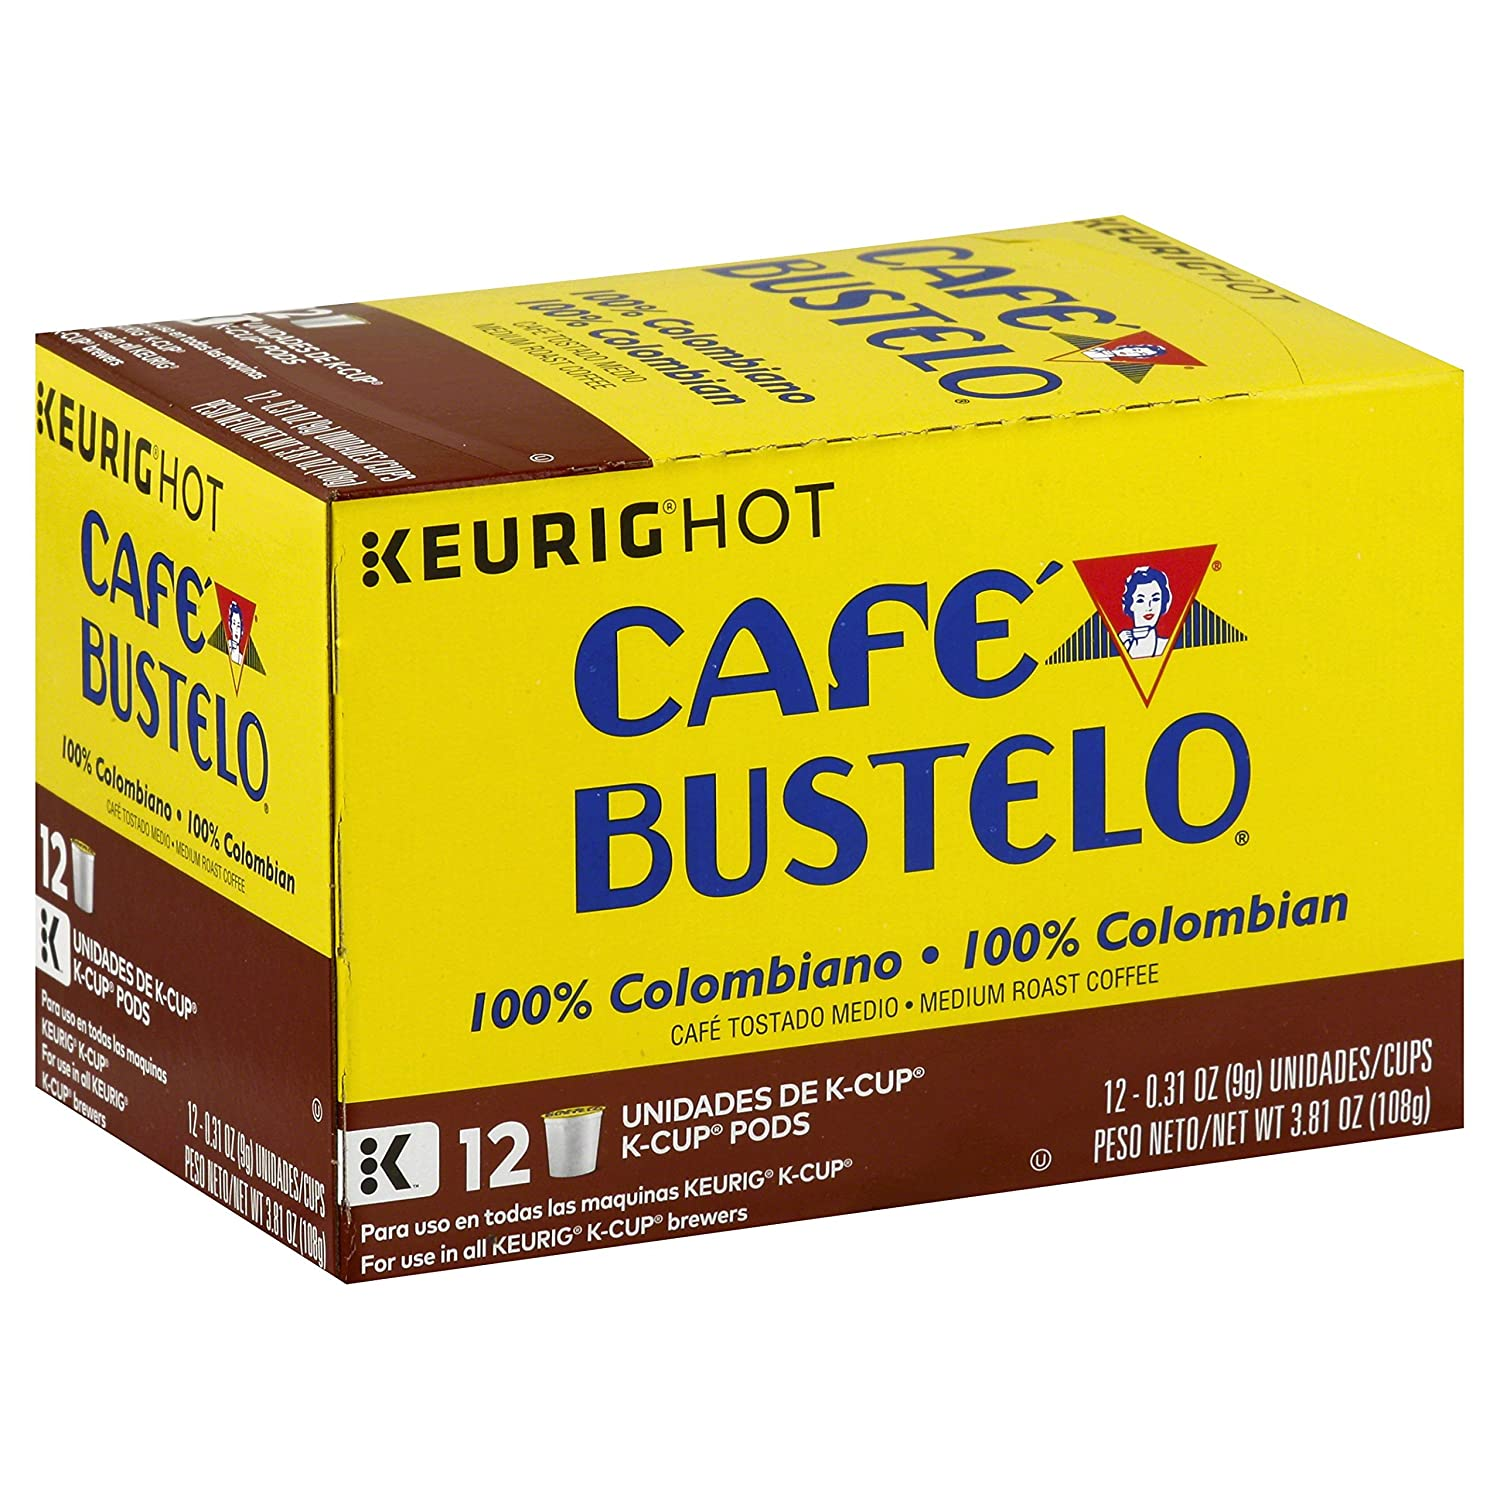 Cafe Bustelo 100% Colombian Medium Roast Coffee, 72 K Cups for Keurig Makers